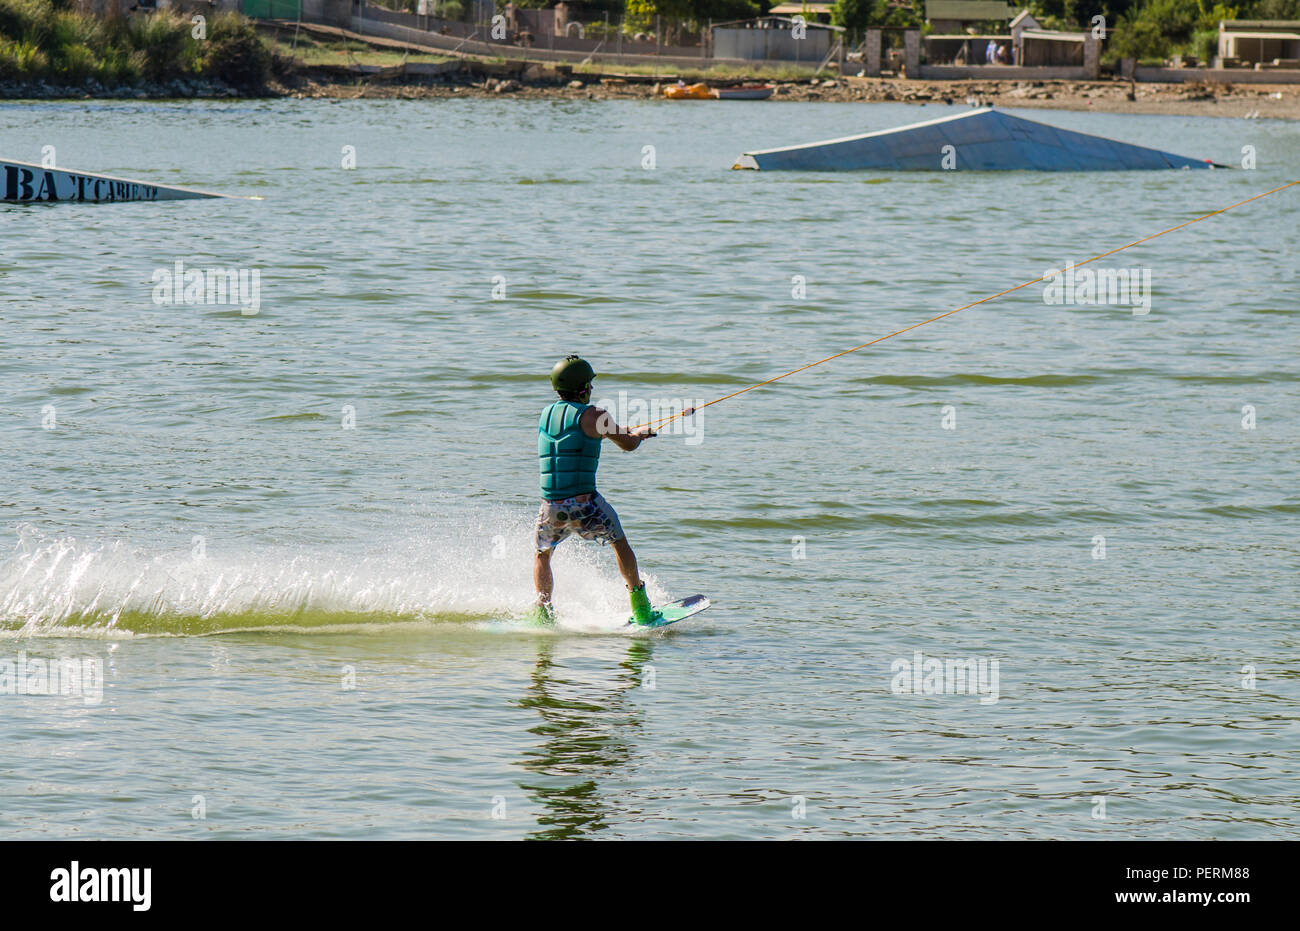 Teenage boy wakeboarding, skurfing, water skiing, on a lake, Wake Park, Pedro de Alcántara, Andalusia, Spain. - Stock Image